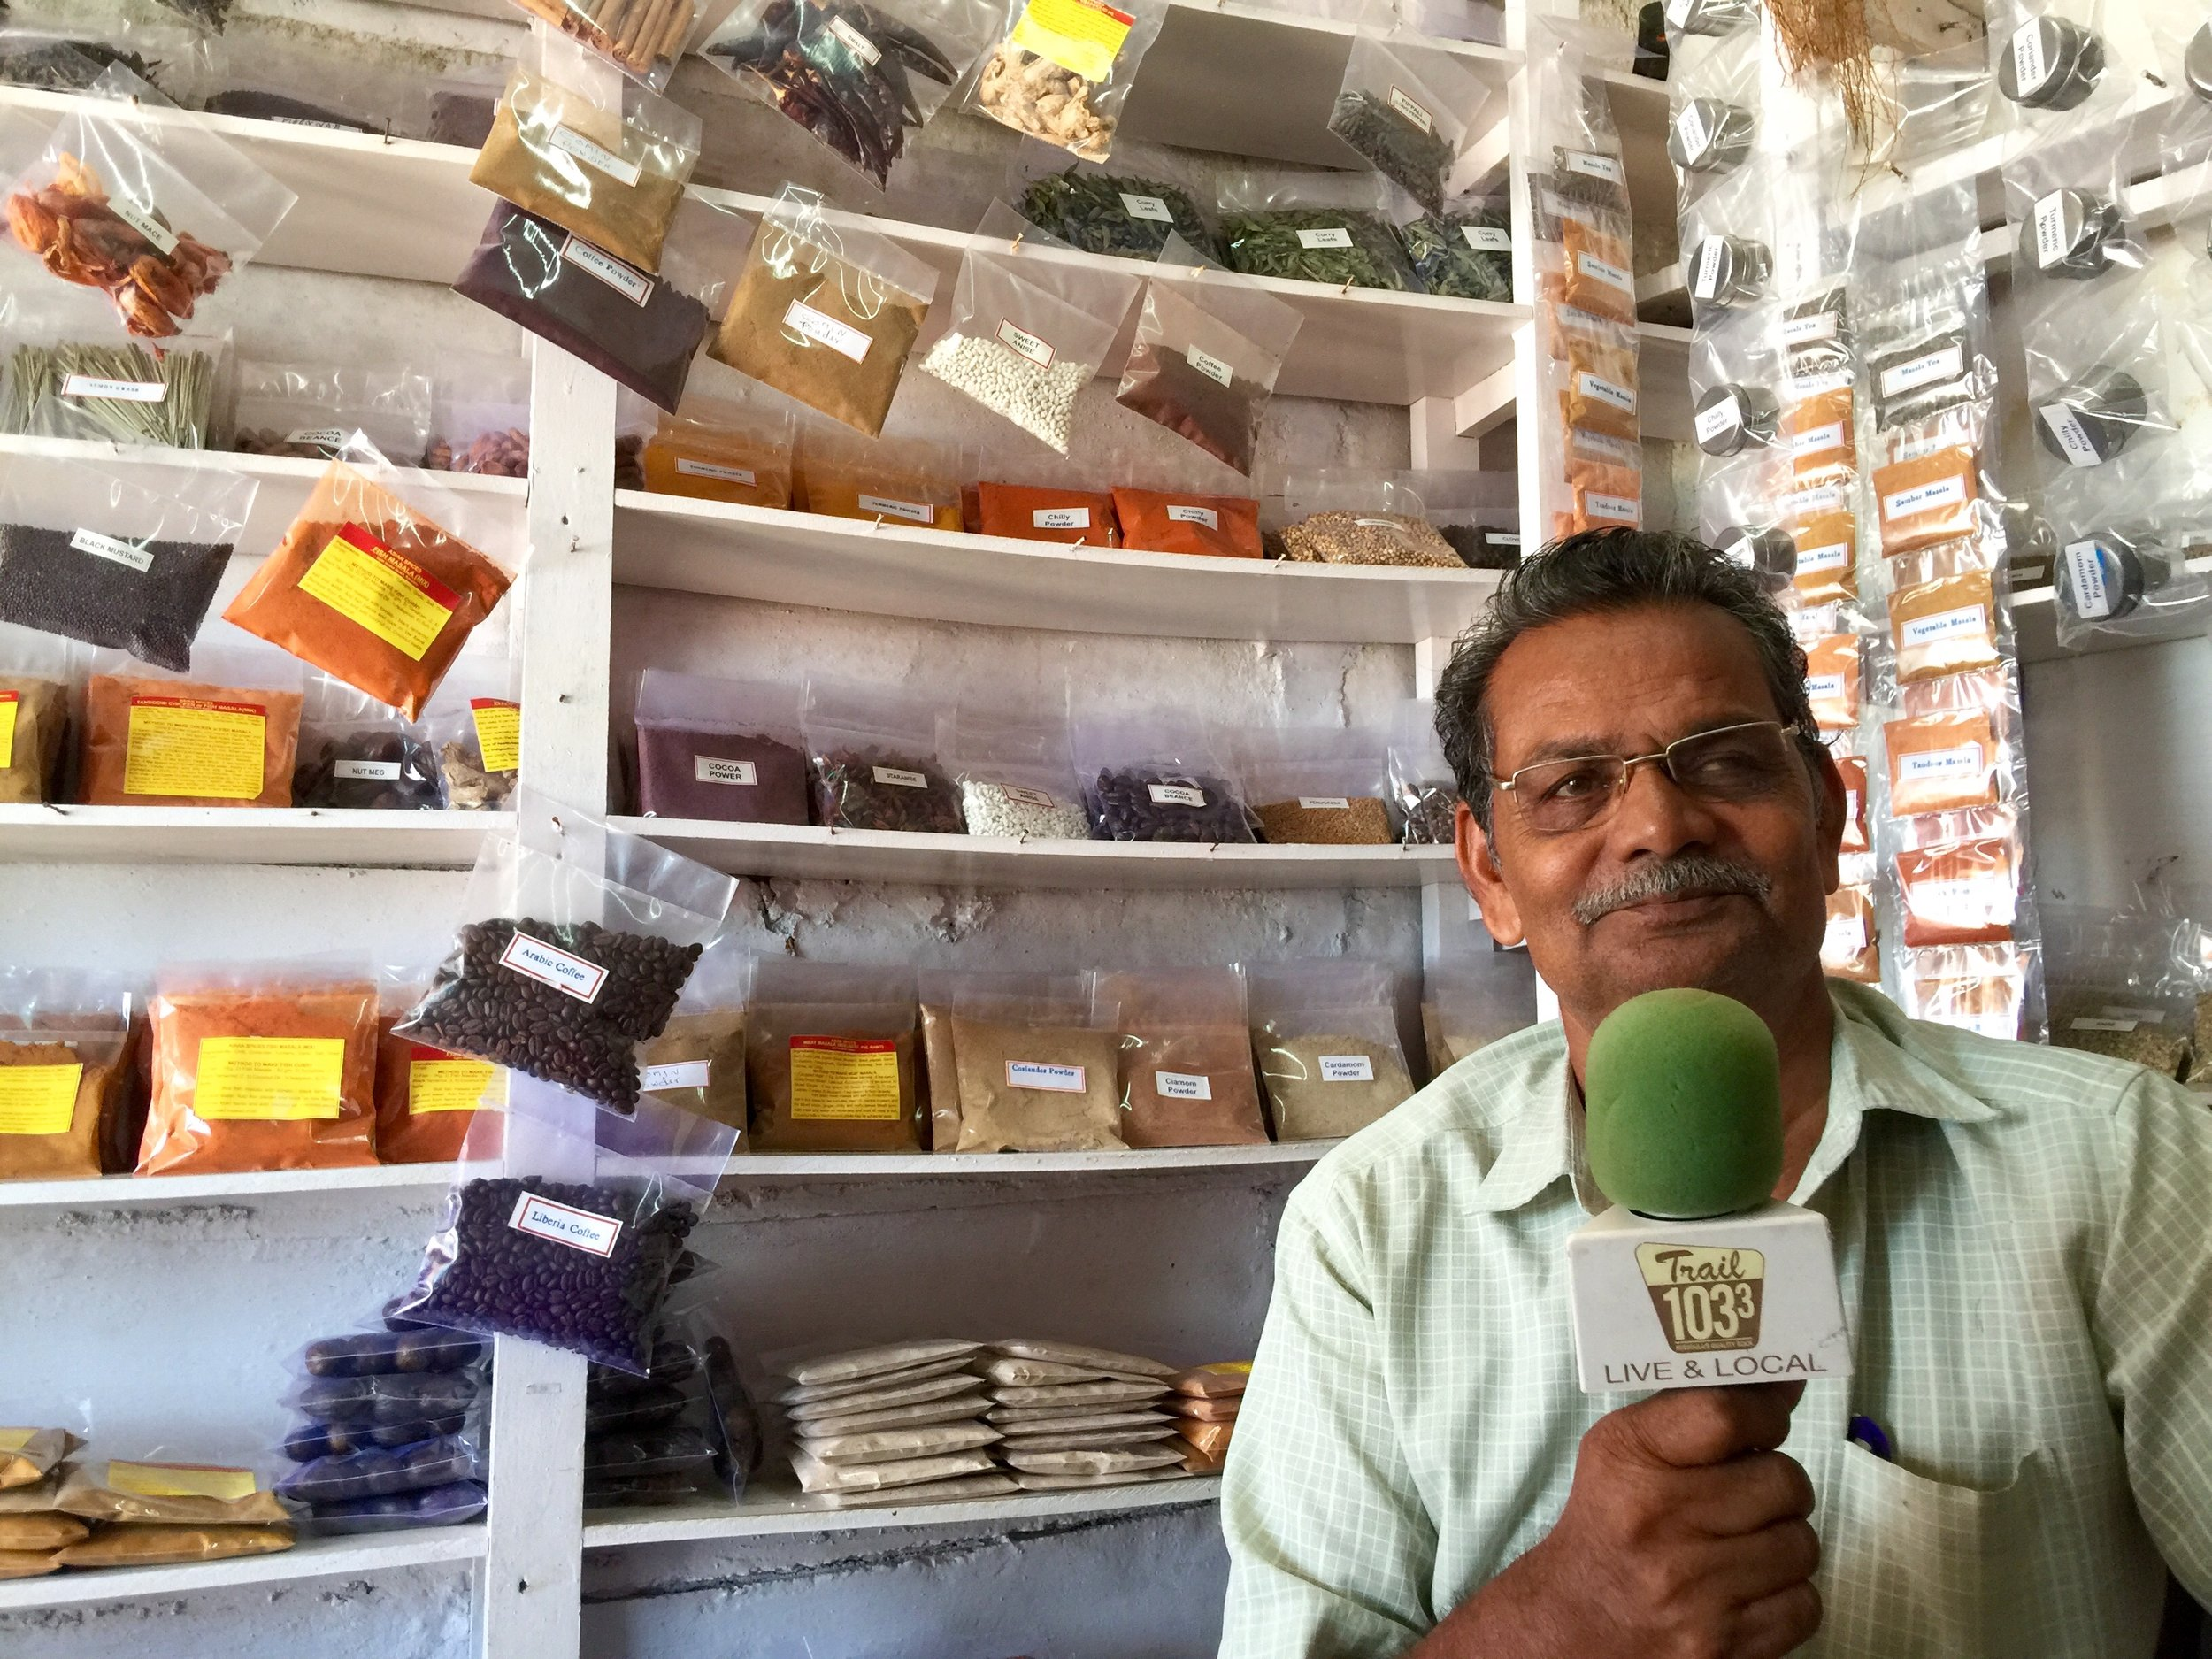 Interviewing Joseph Vattapili, a third generation farmer who grows cardamom, cumin, turmeric, nutmeg, cinnamon, pepper, anise, cocoa & other spices in Southwestern India.